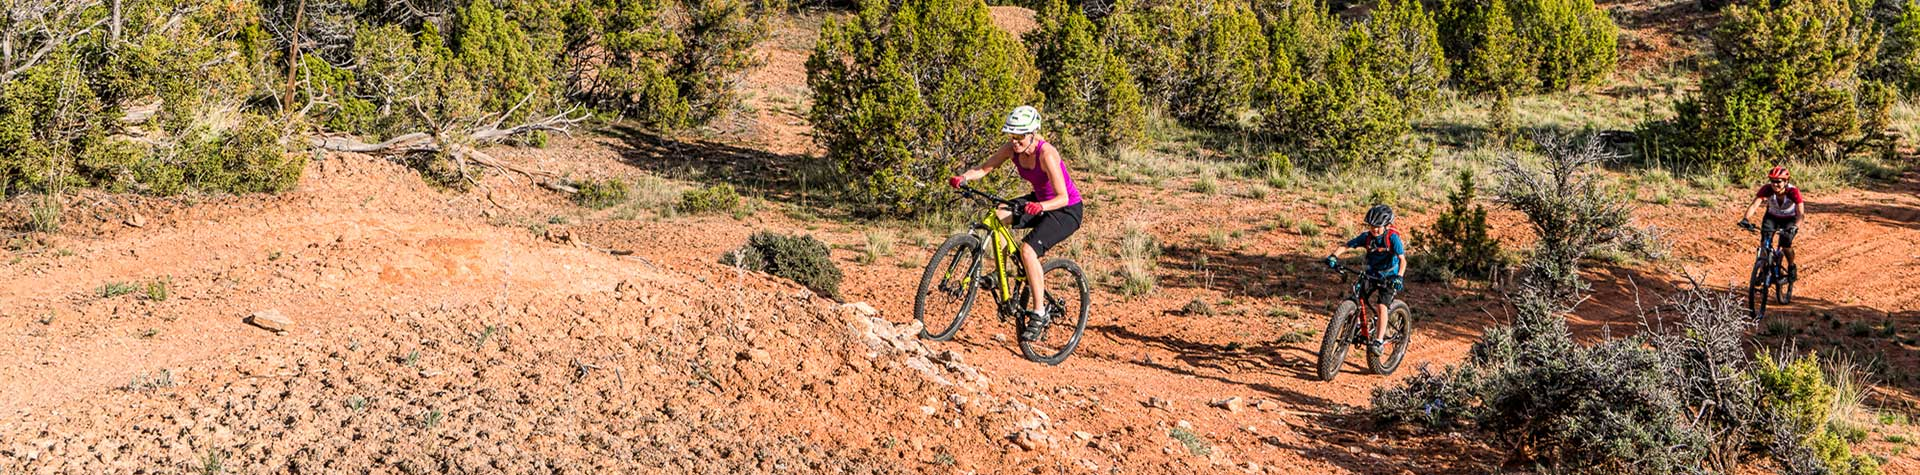 Mountain Biking at Dude Ranches